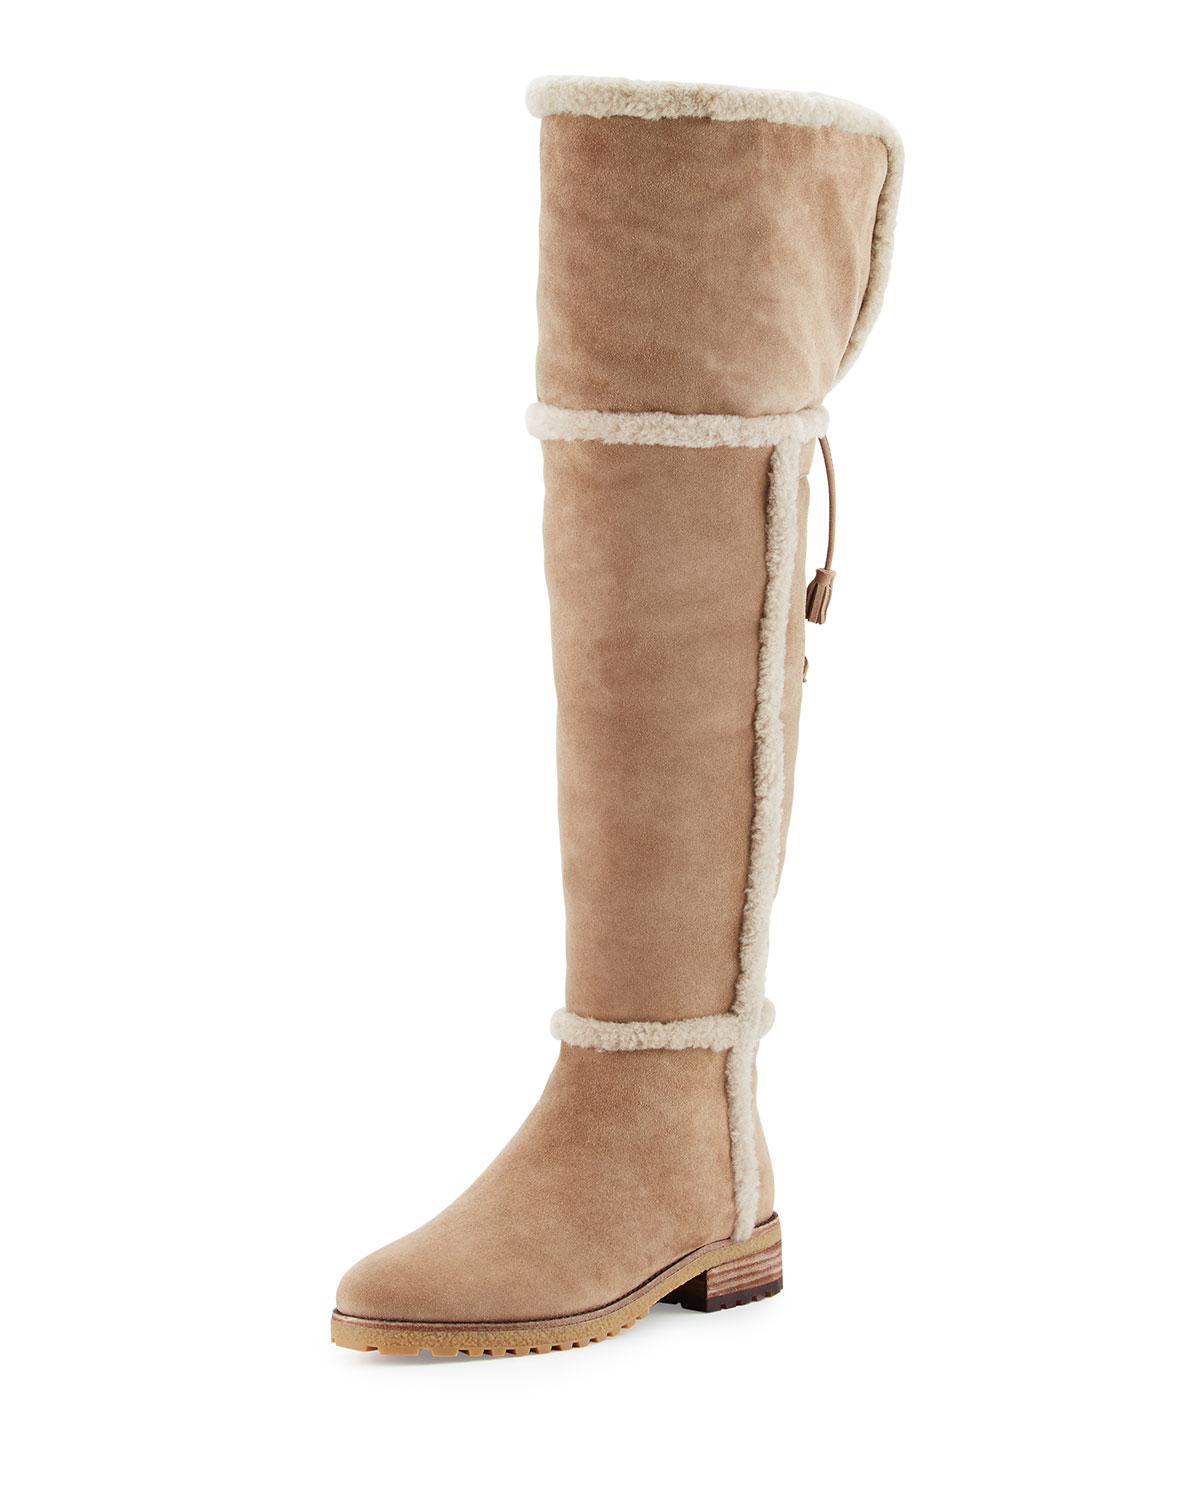 d29b0afd5a7 Frye Tamara Shearling Over-The-Knee Boot